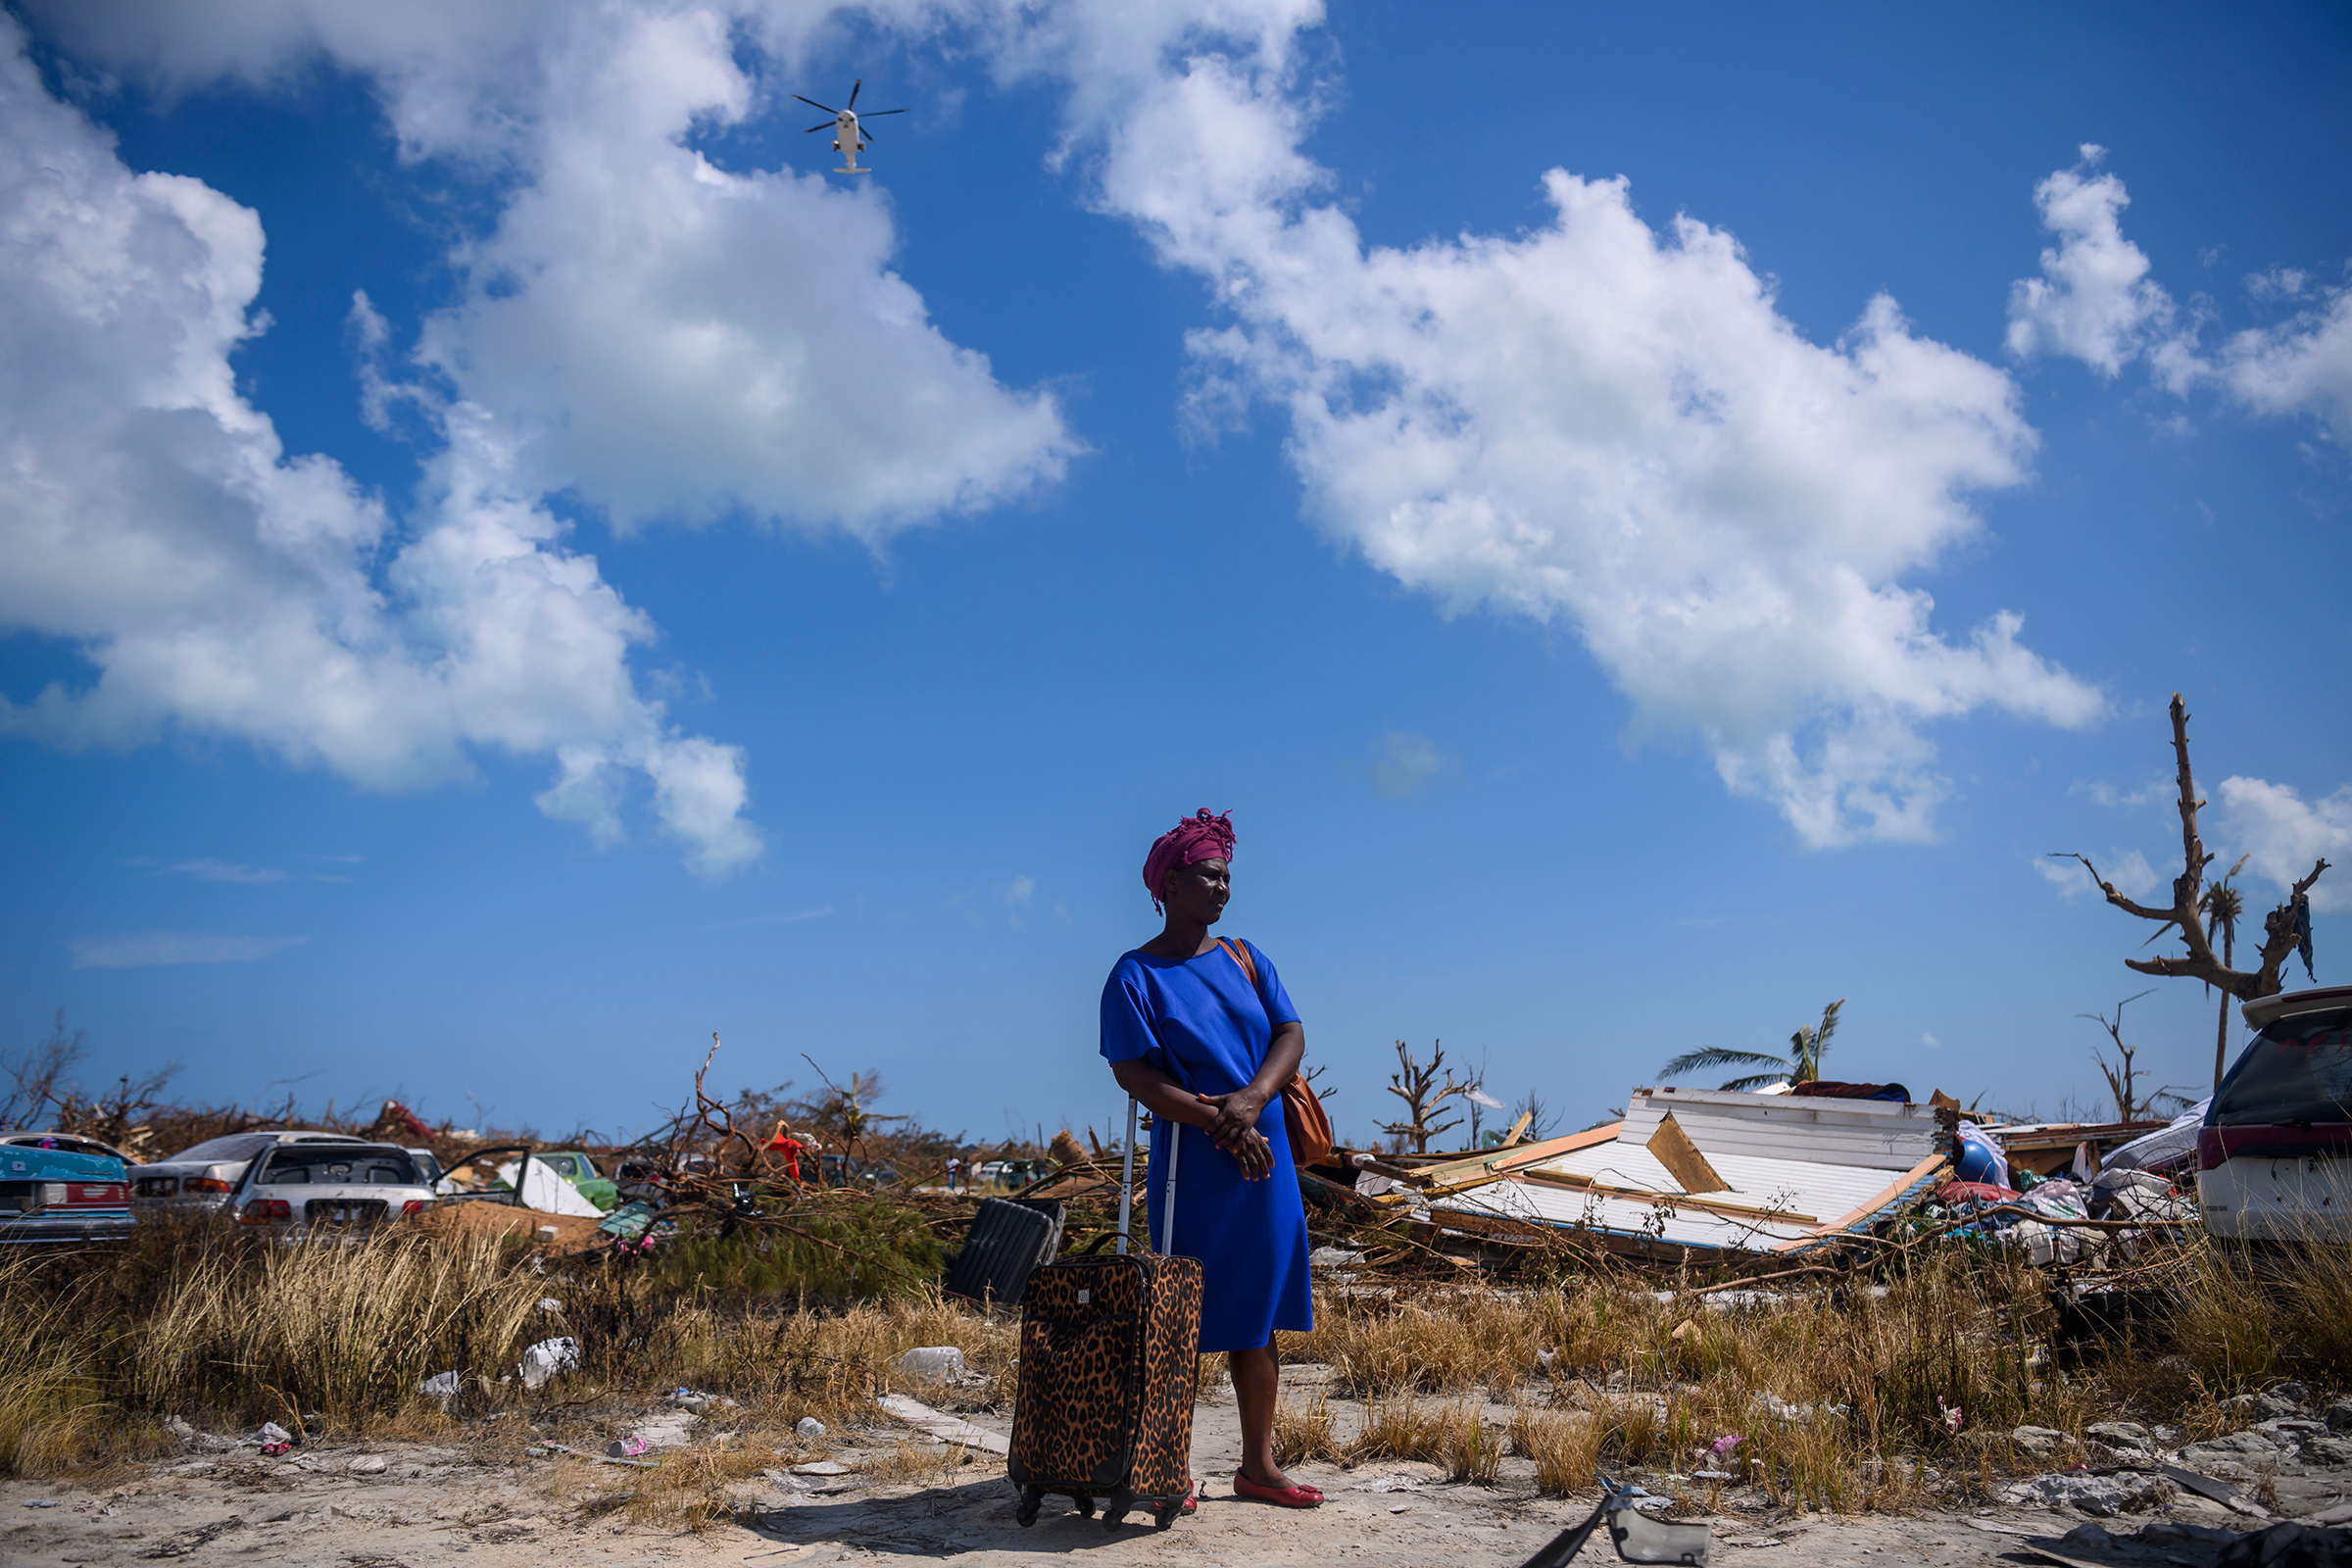 Dejani Louistan, who was displaced by Hurricane Dorian, stands with the only belongings she managed to salvage amid the destruction left in the Mudd neighborhood of Marsh Harbour, Bahamas on September 7, 2019.